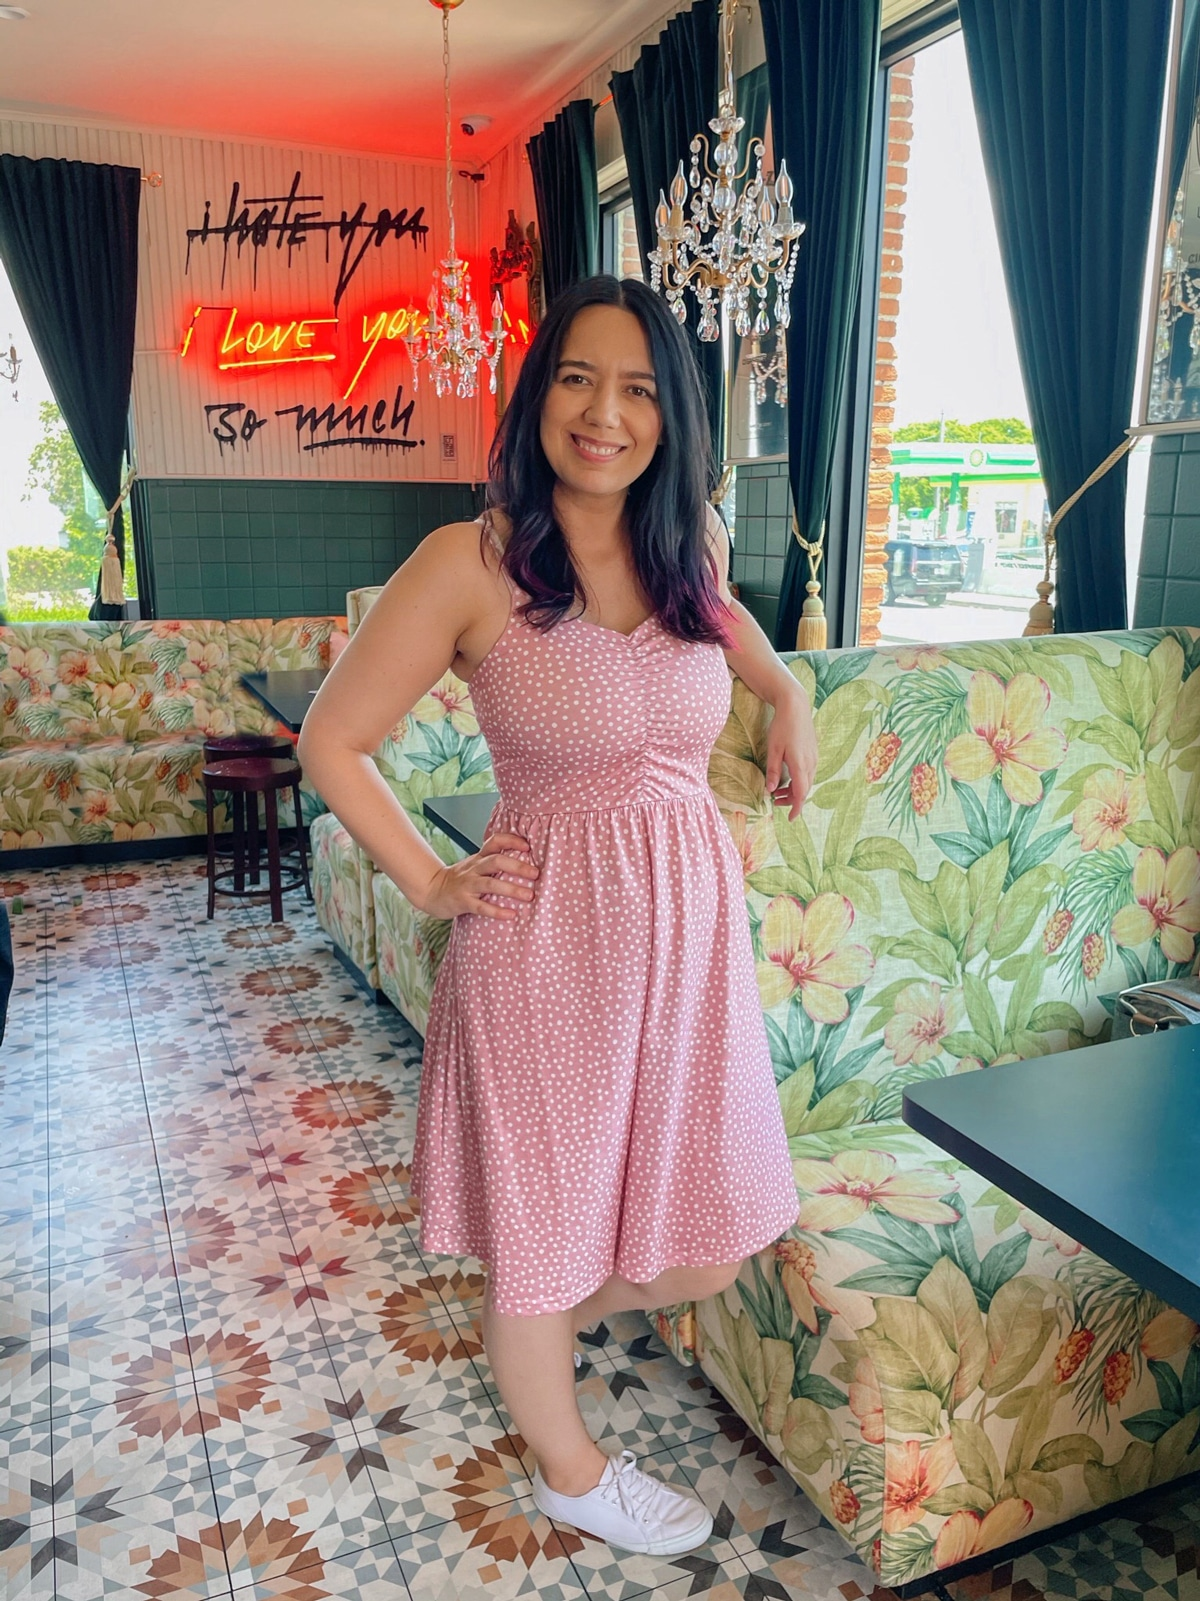 Cafe Kush MiMo Miami Historic District Hidden Gem REstaurant for Brunch indoor seating